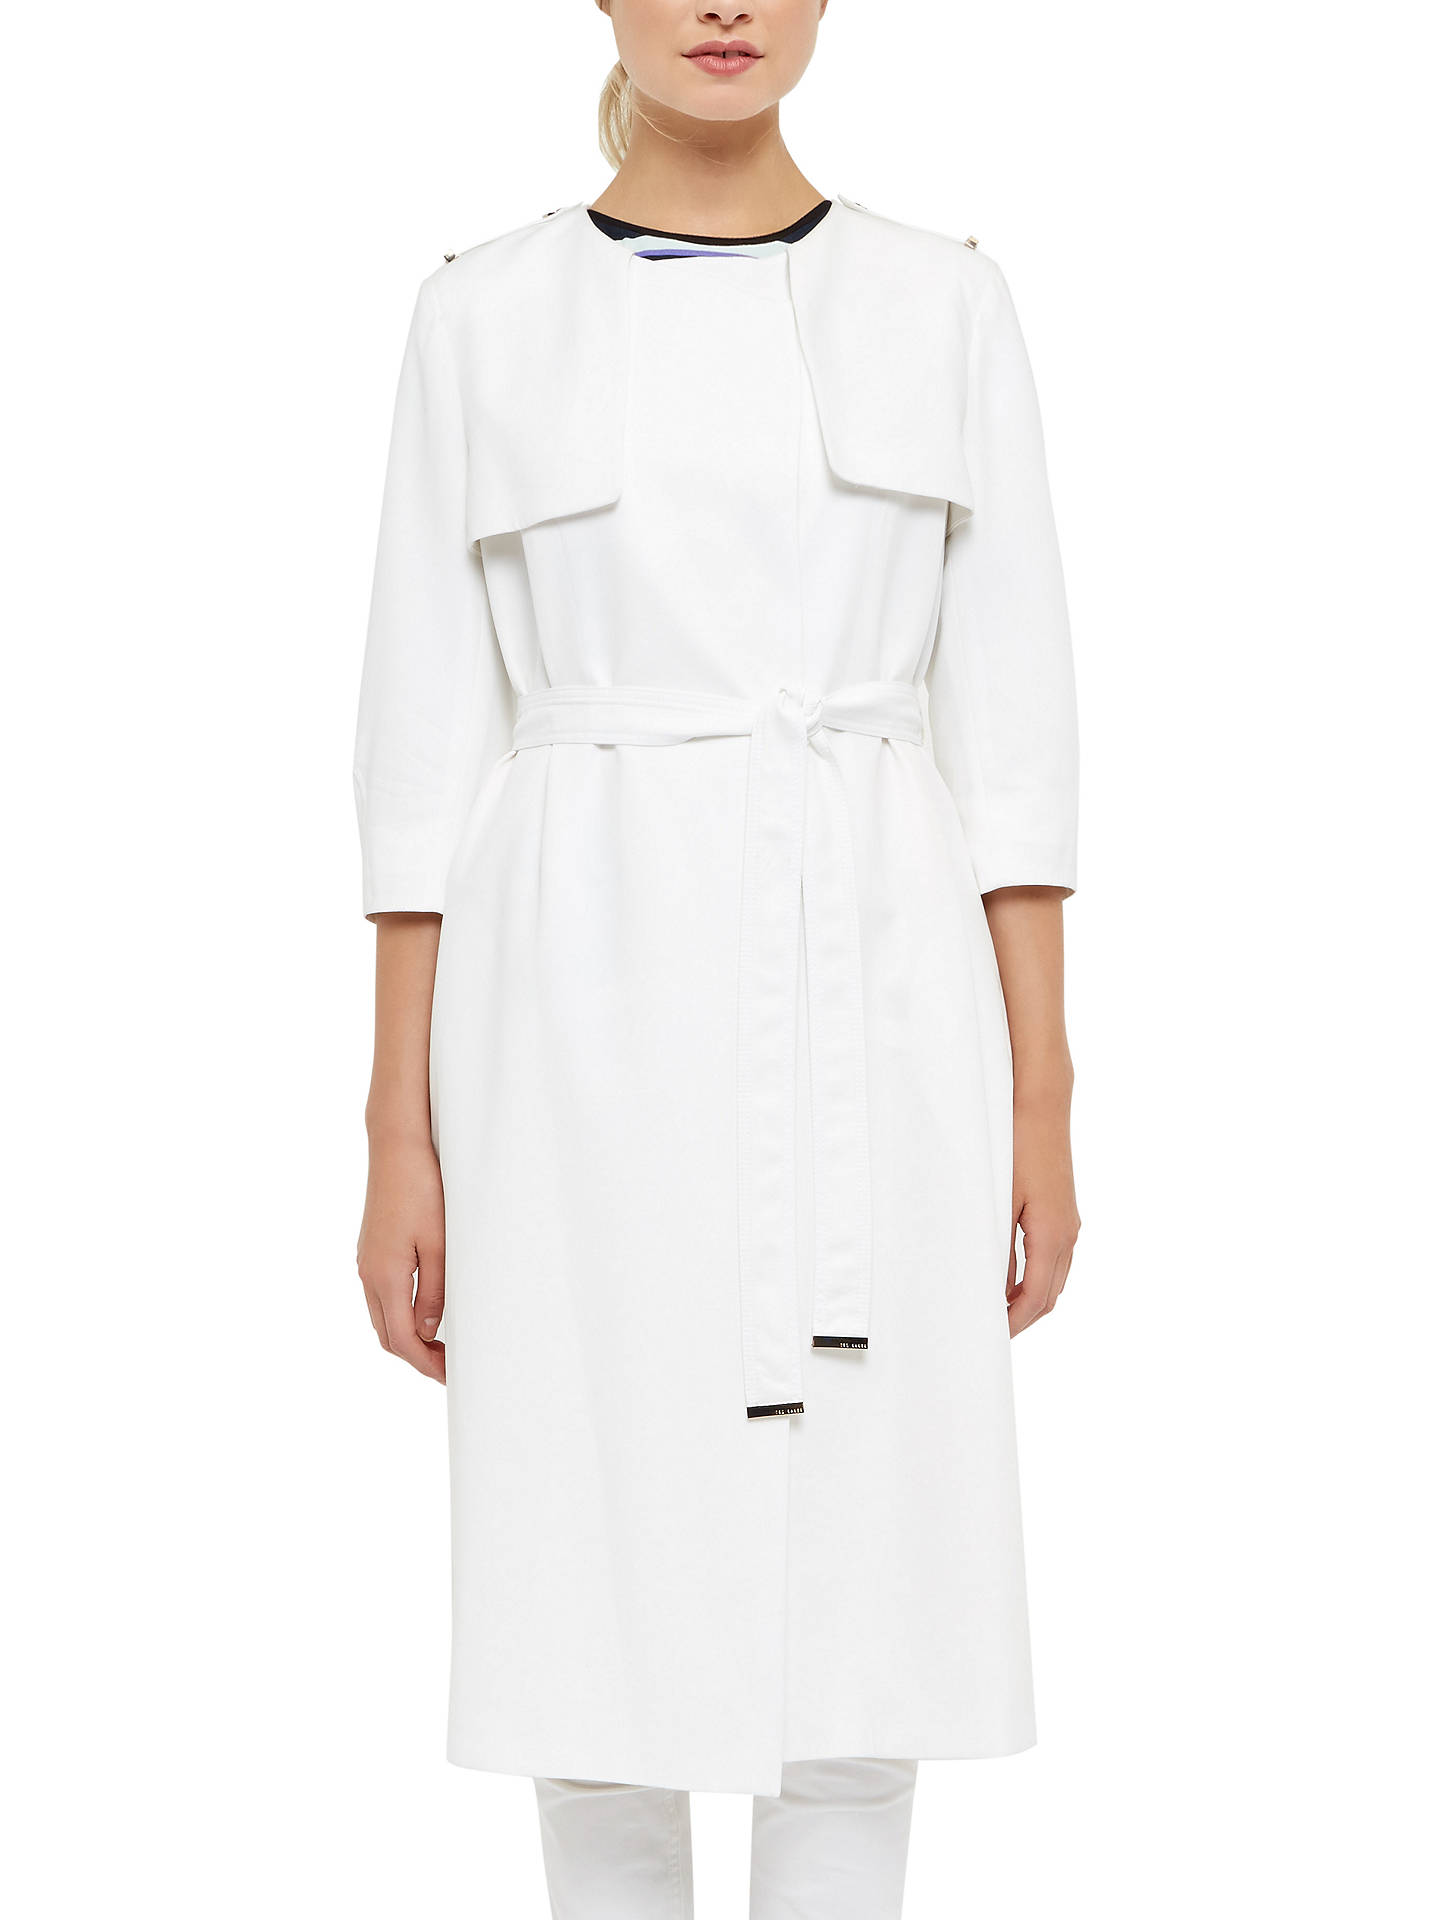 BuyTed Baker Paulaa Lightweight Trench Coat, Cream, 0 Online at johnlewis.com